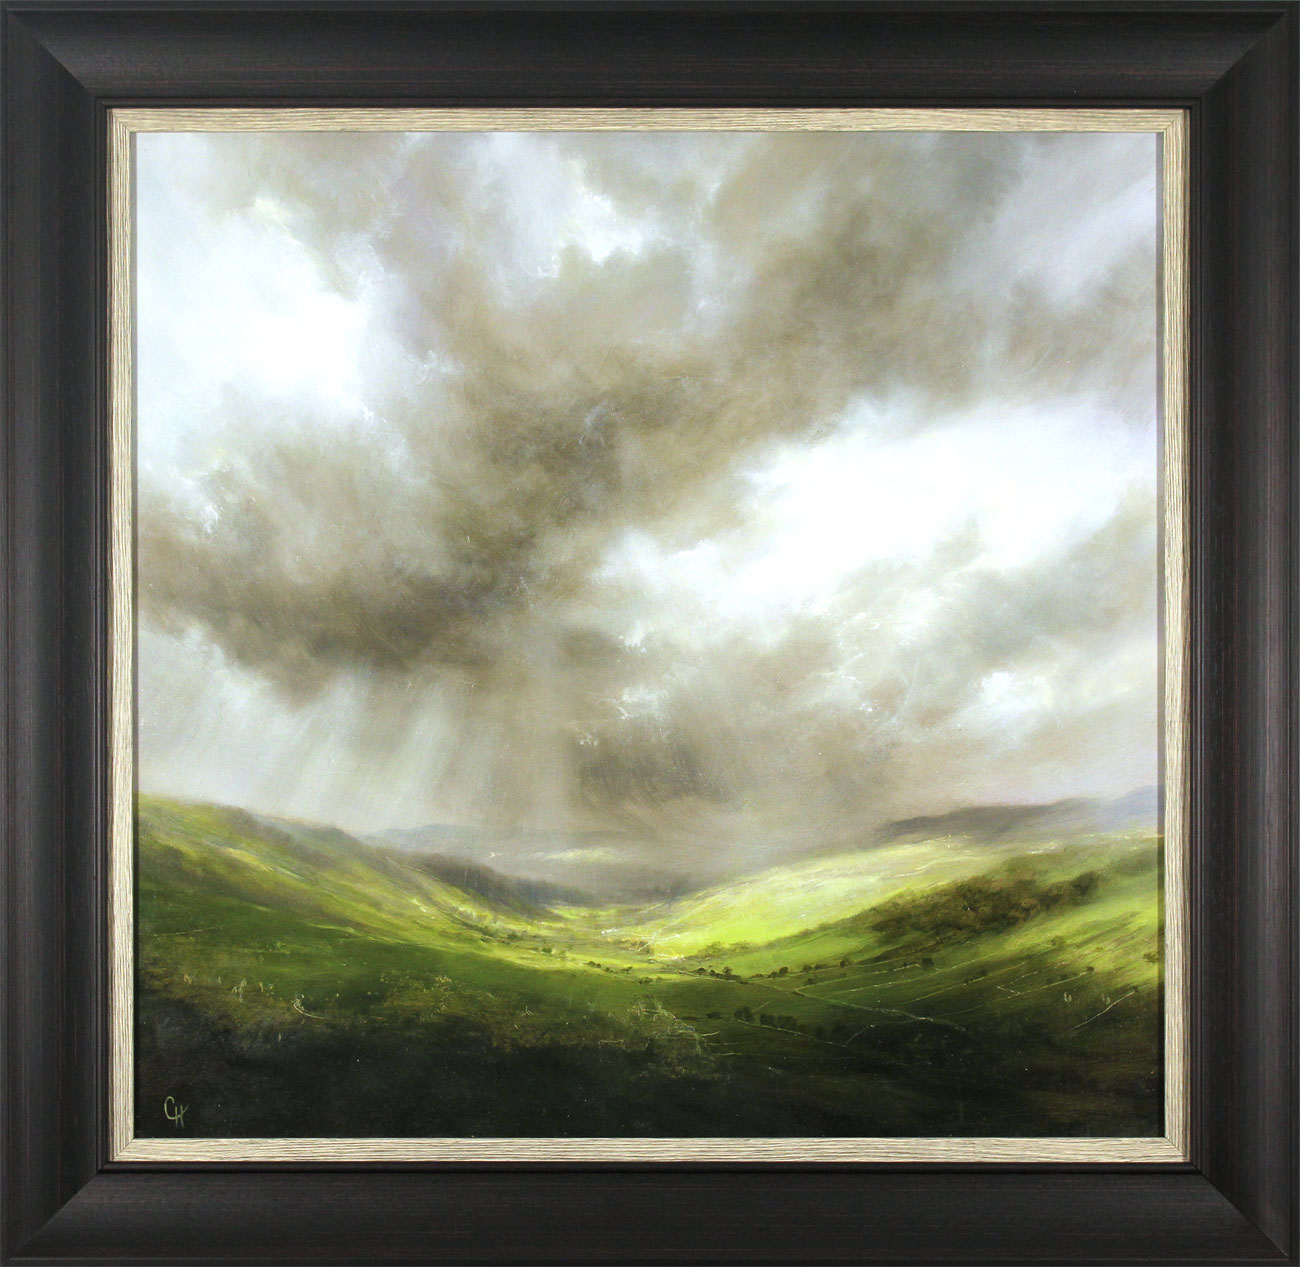 Clare Haley, Original oil painting on panel, Light Show at Wharfedale, click to enlarge